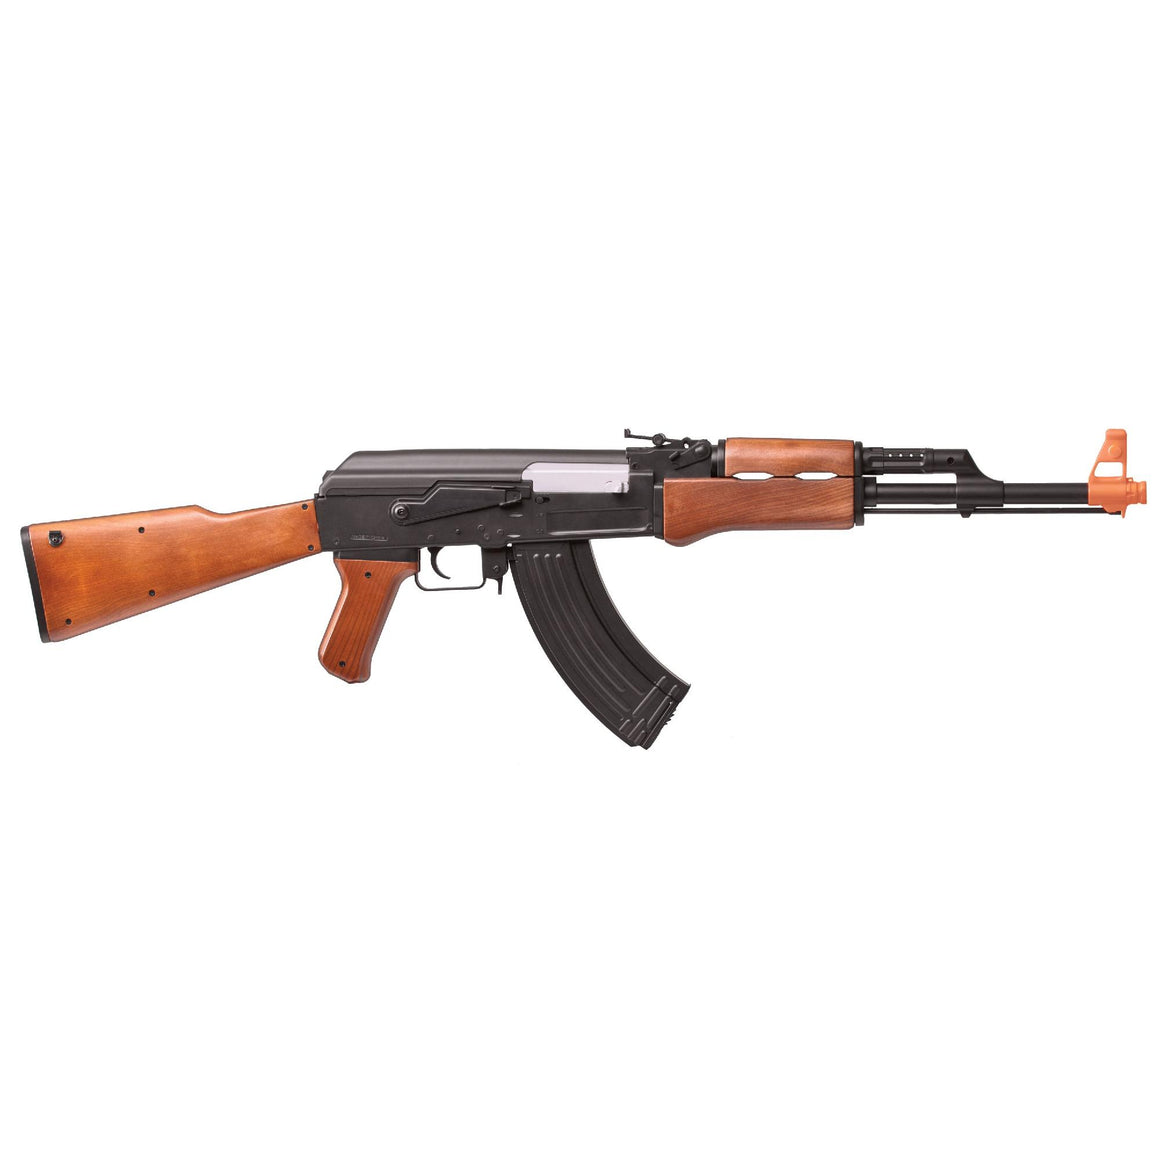 Battlemaster Electric Full-Semi AK Style Rifle 6mm